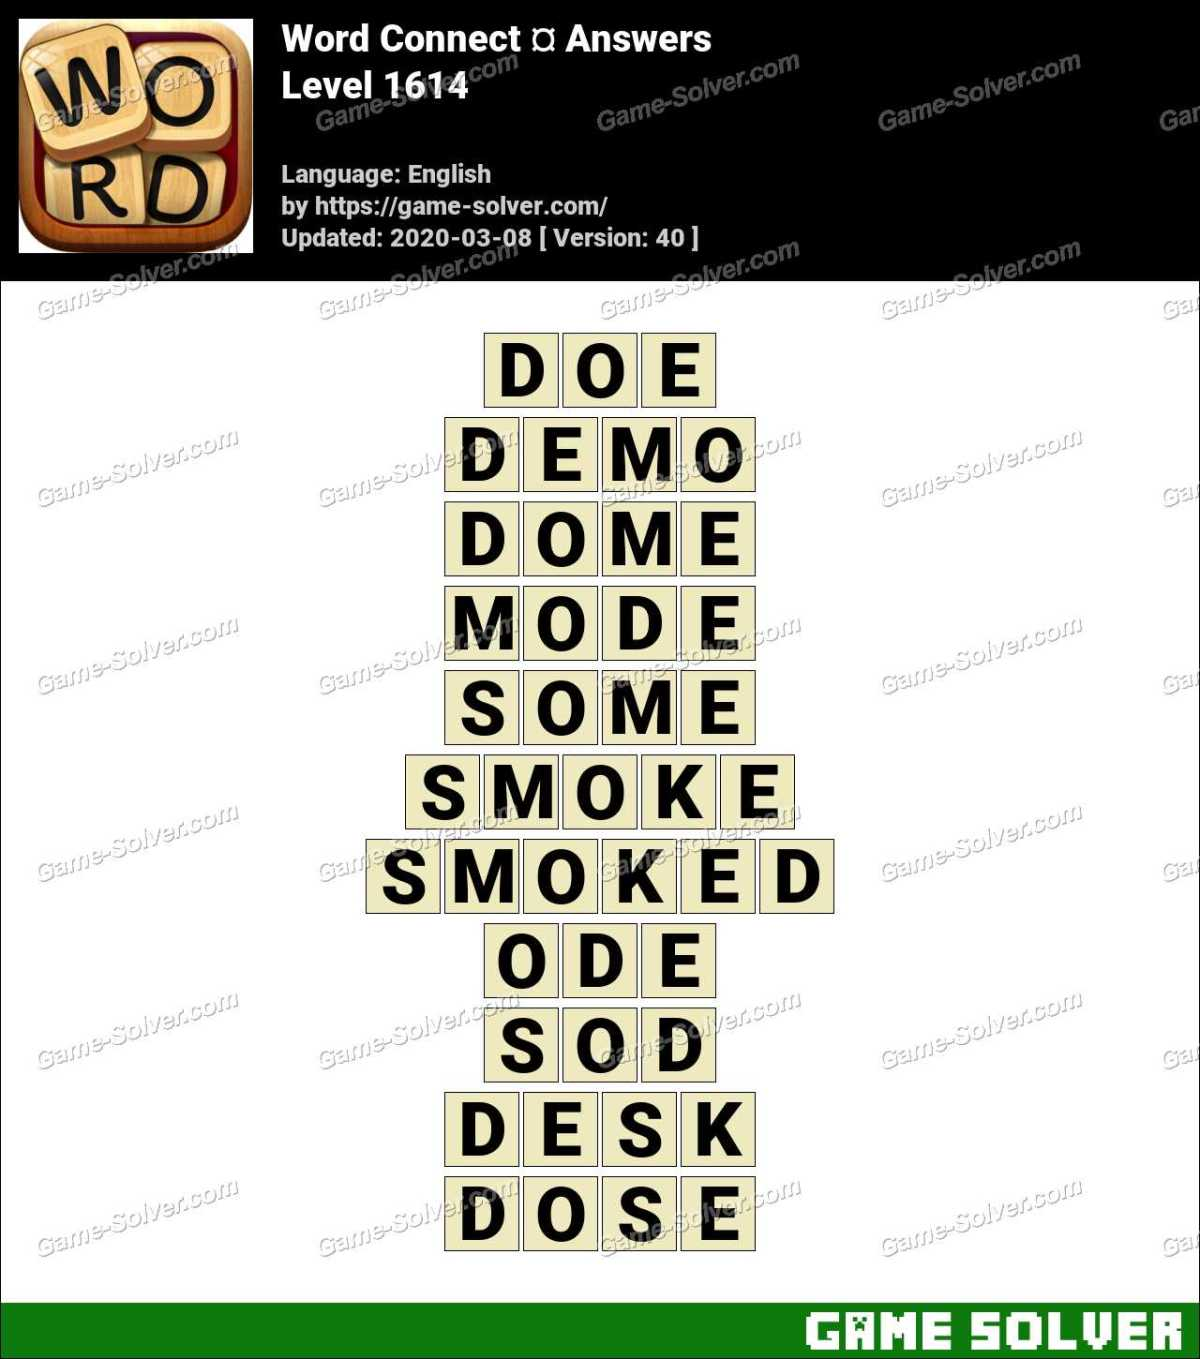 Word Connect Level 1614 Answers